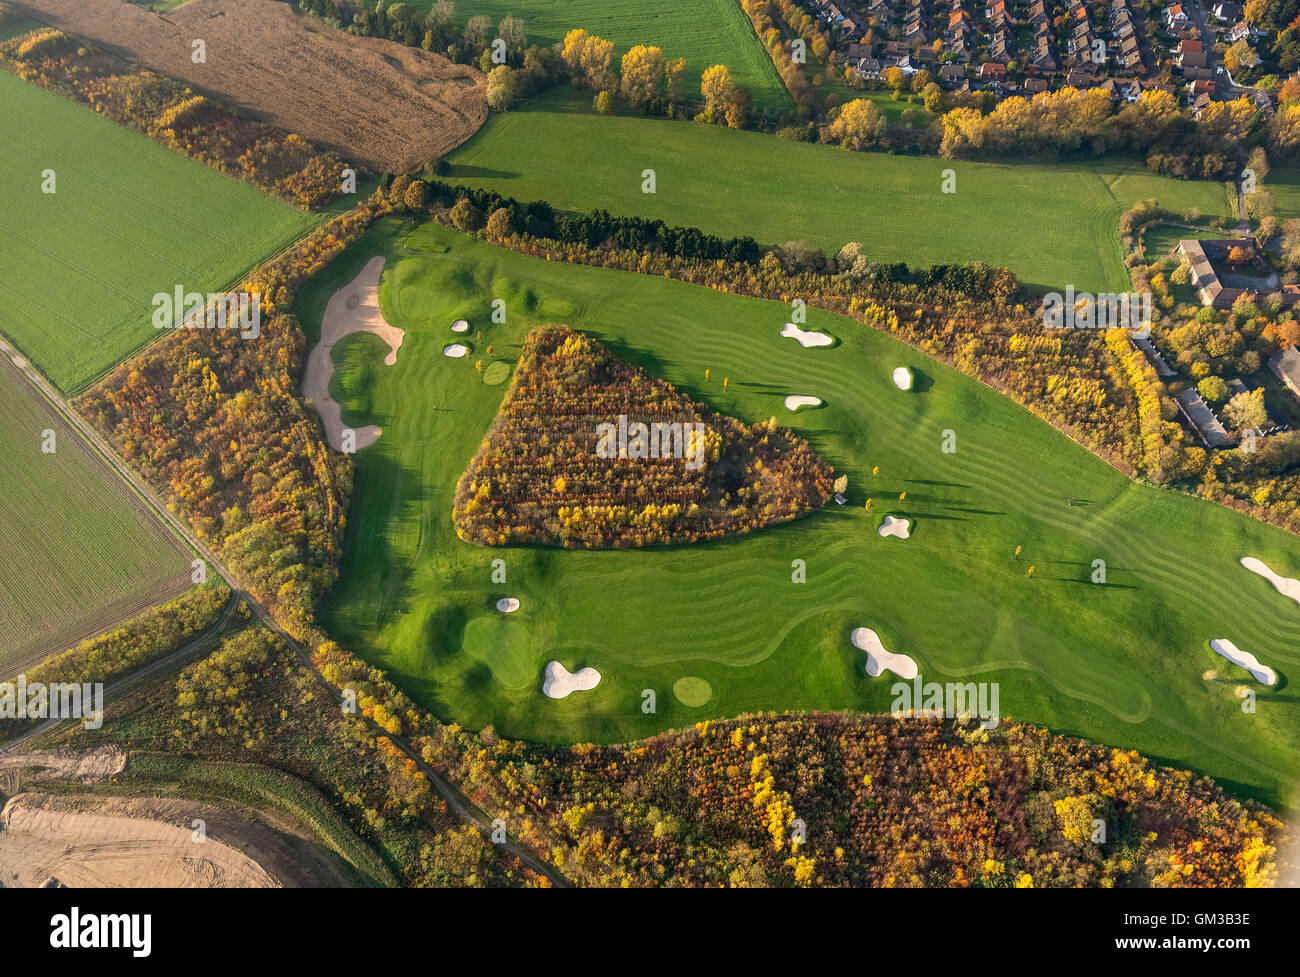 Aerial view, golf and more Duisburg Huckingen, Golf Course Duisburg, bunkers, sand pits, triangle Woods am Remberger - Stock Image